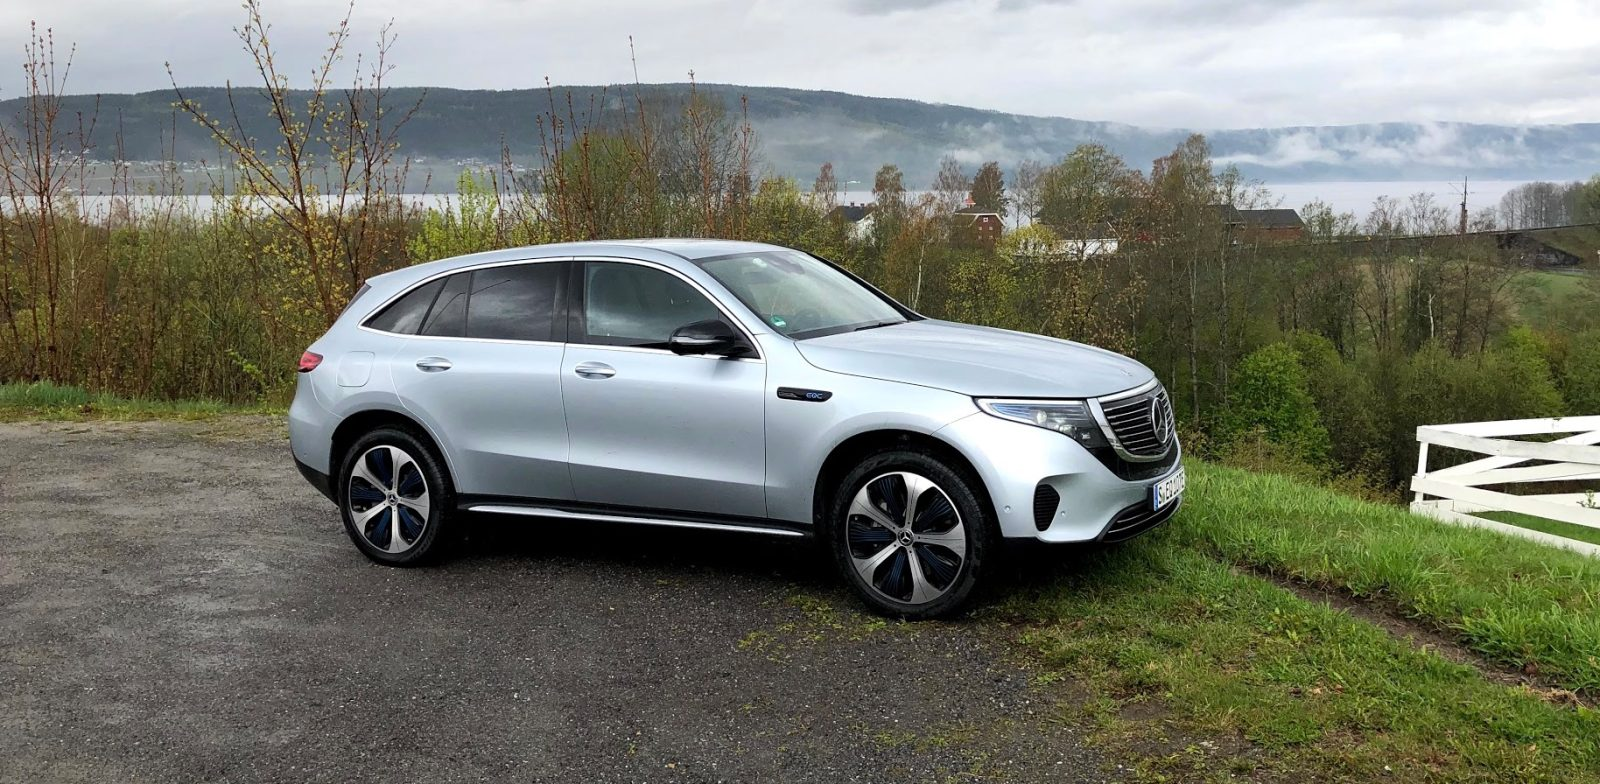 Mercedes-Benz EQC first drive review: an easy way for Mercedes drivers to go electric